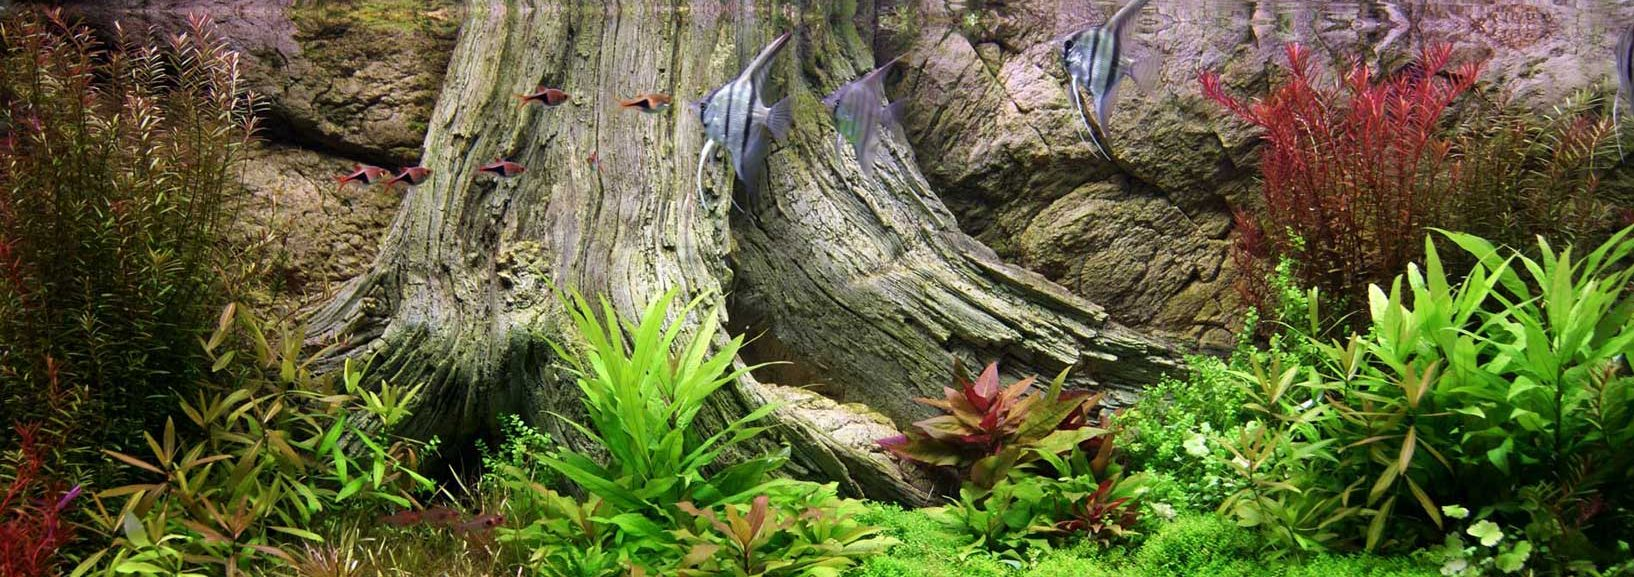 Amazonas aquarium background